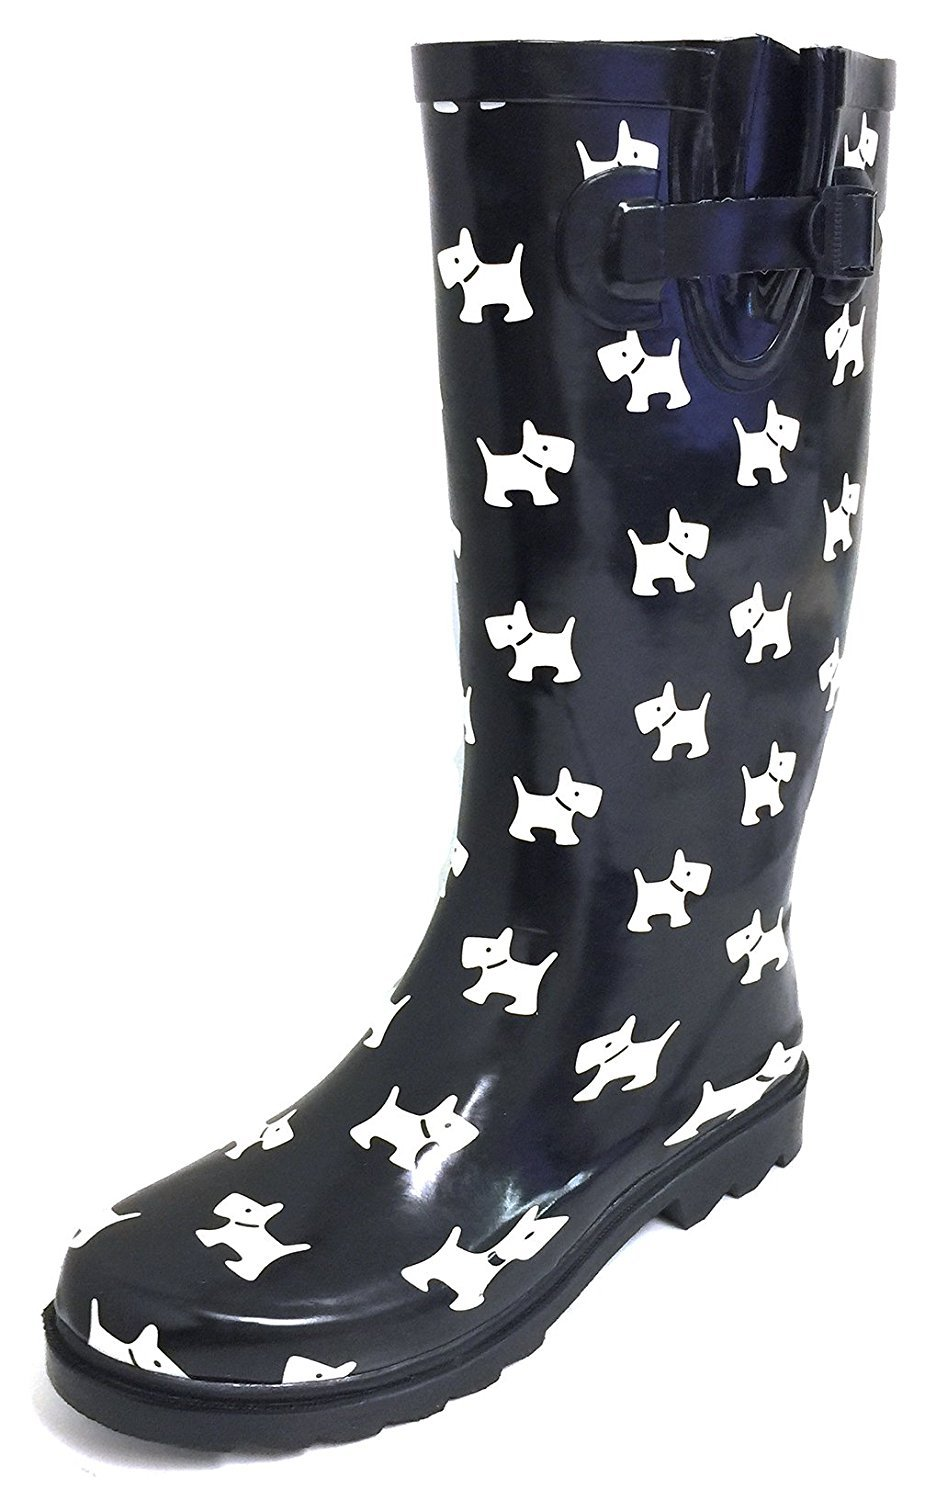 G4U Women's Rain Boots Multiple Styles Color Mid Calf Wellies Buckle Fashion Rubber Knee High Snow Shoes (7 B(M) US, Black/White Puppies)